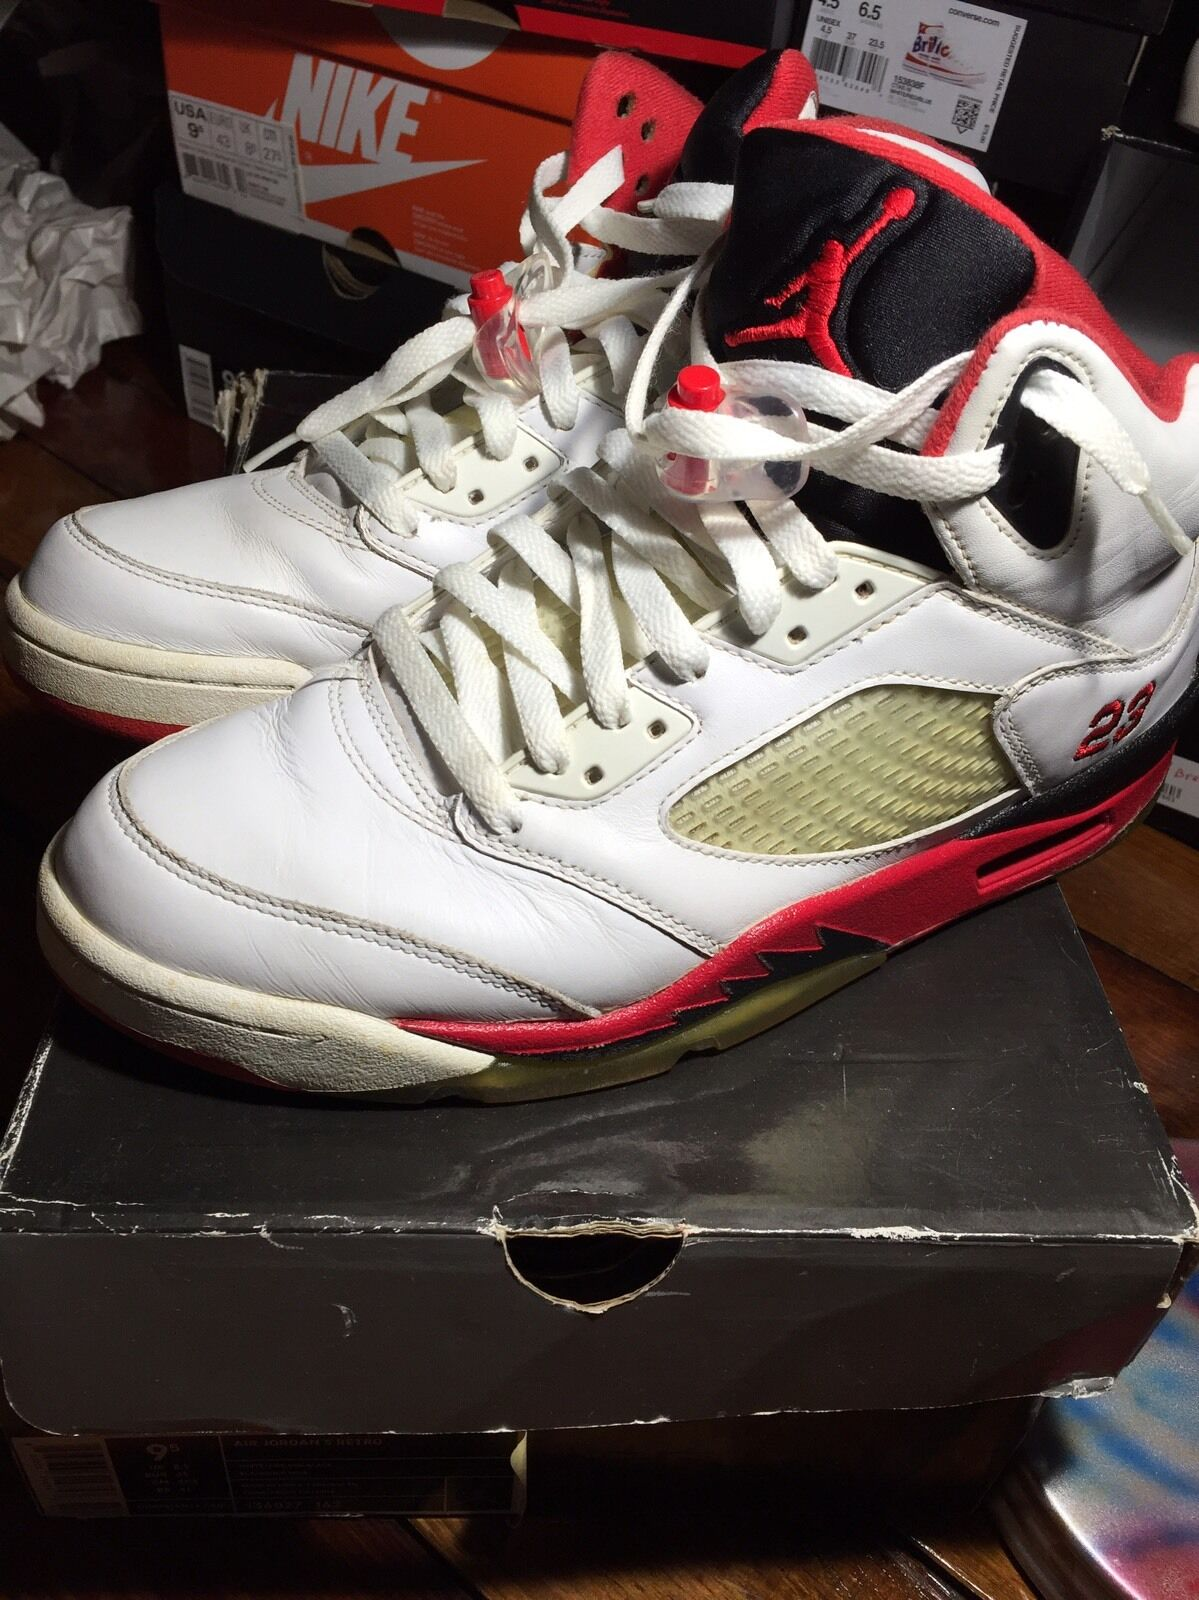 2be7f40cc0c508 136027-162 Nike Nike Nike Air Jordan Fire Red 5 Retro 2006 White Blk V Sz  9.5 Top 3 Bred 1 28e49f